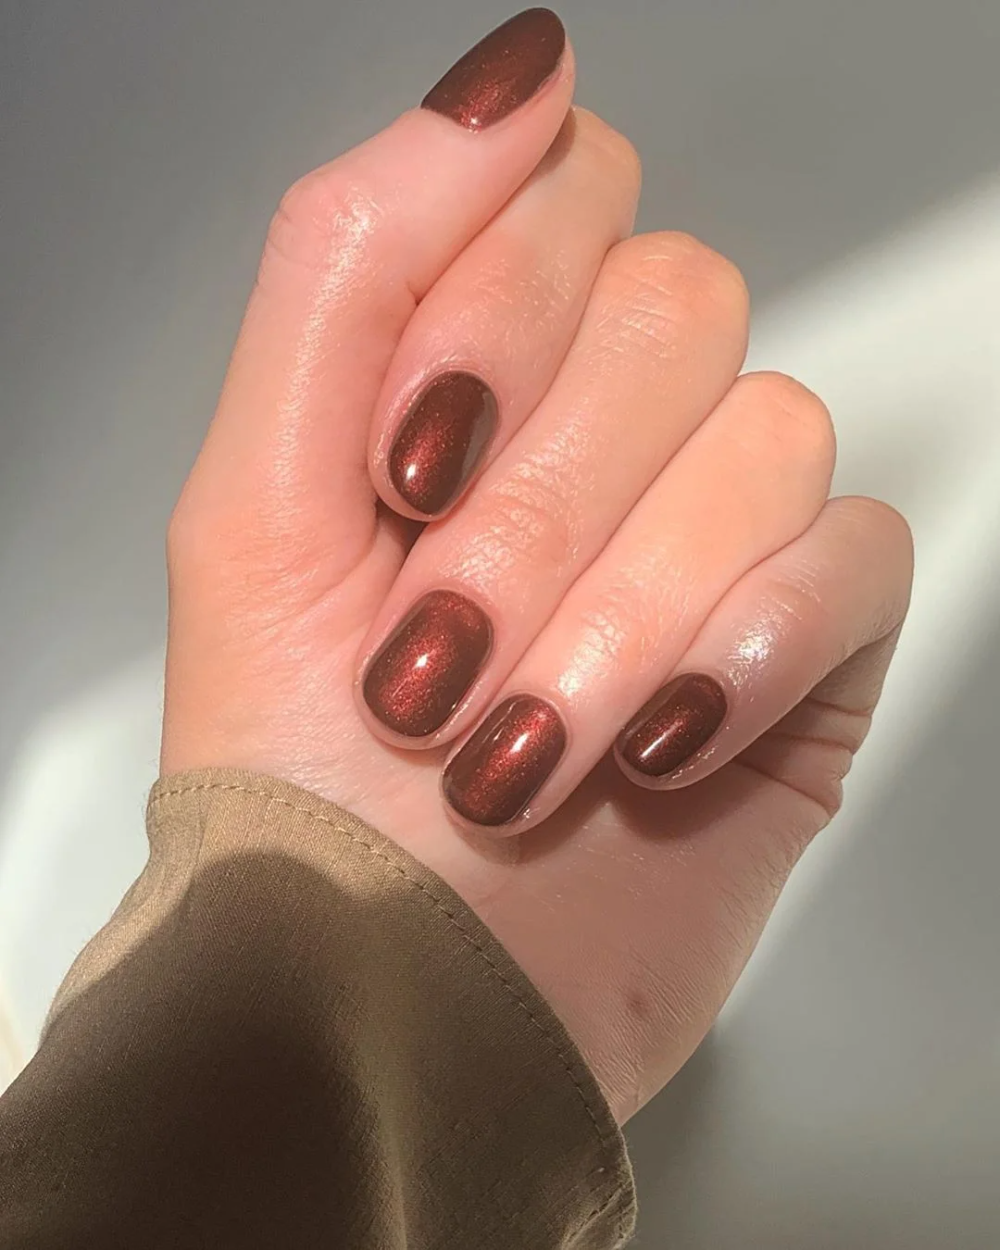 43 Incredible Nail Ideas to Try This Fall